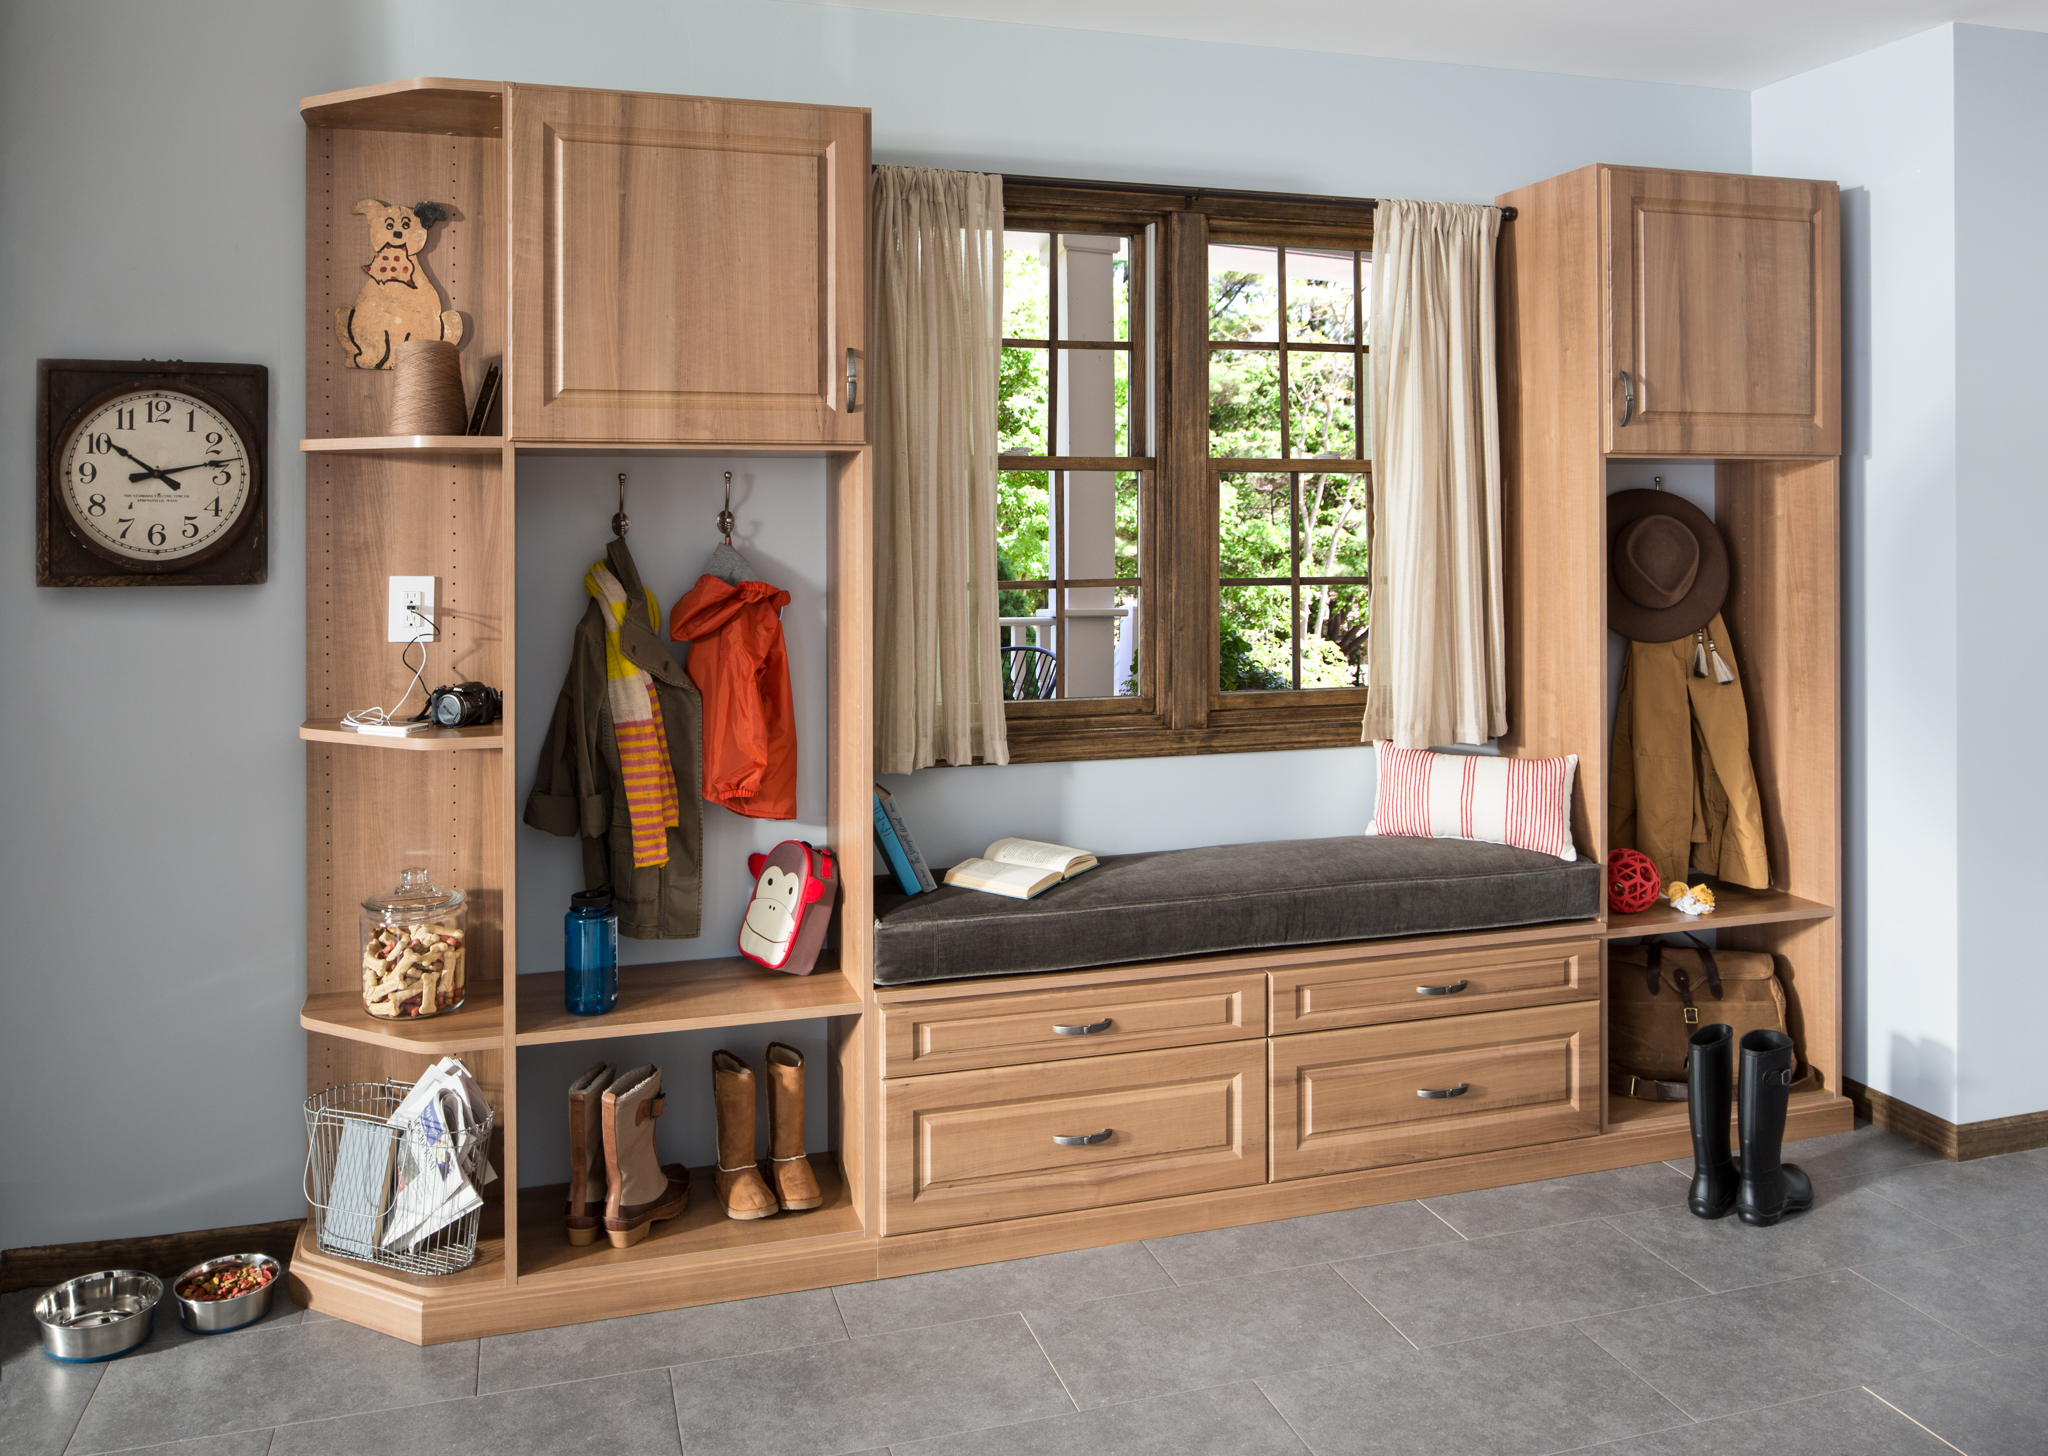 Foyer Closet Jobs : Smart storage strategies for building your new home